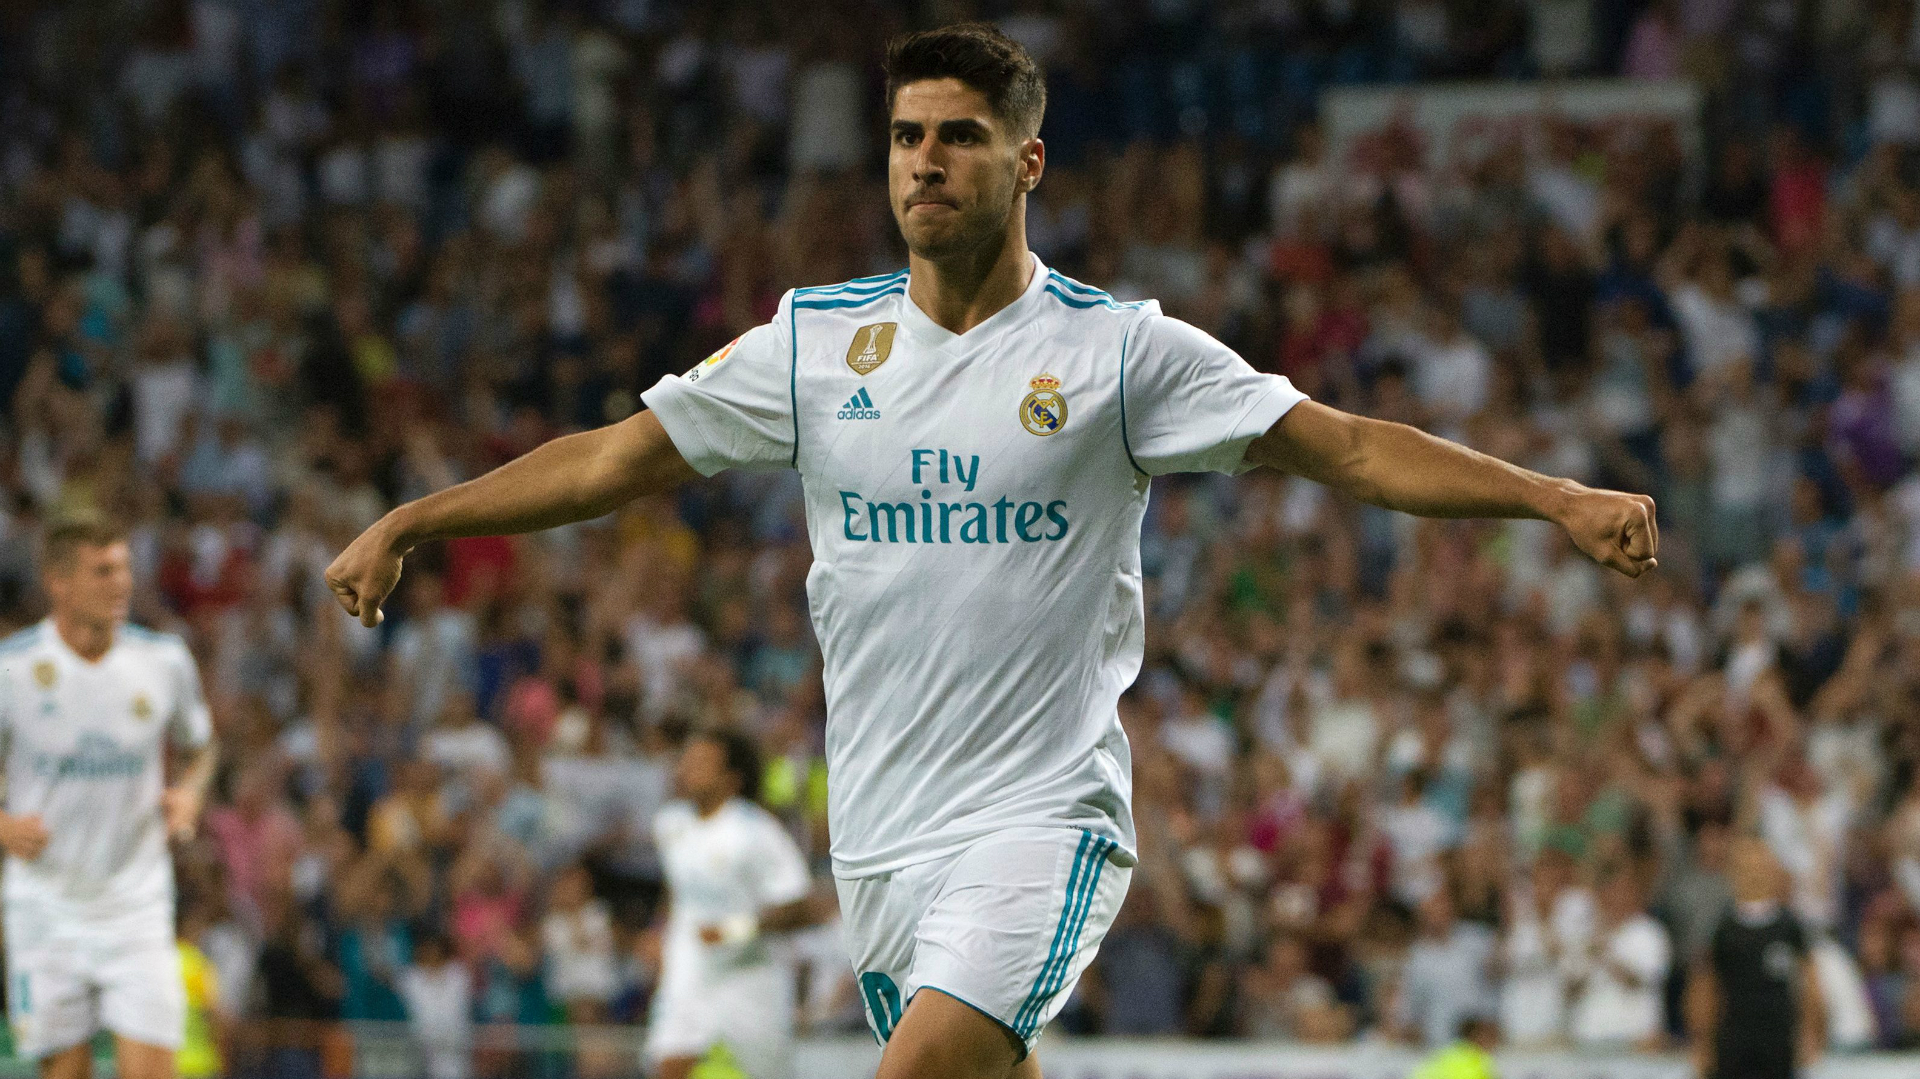 Marco Asensio: career of a young Spanish midfielder in Real Madrid and the Spanish national team 37